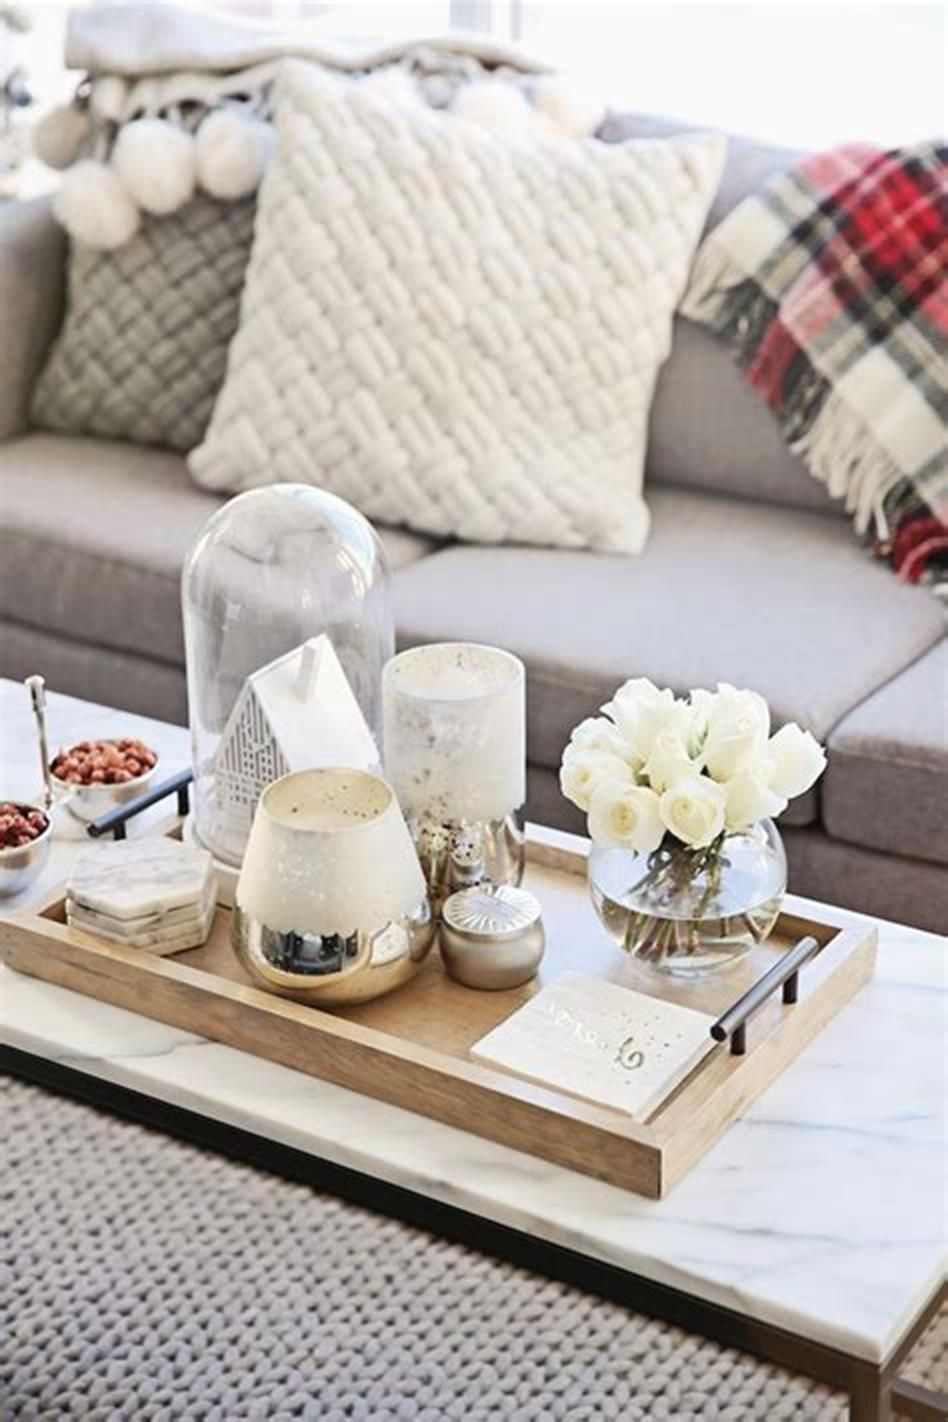 46 Awesome Coffee Table Tray Decor Ideas Homeandcraft Coffee Table Decor Tray Coffee Table Tray Decor